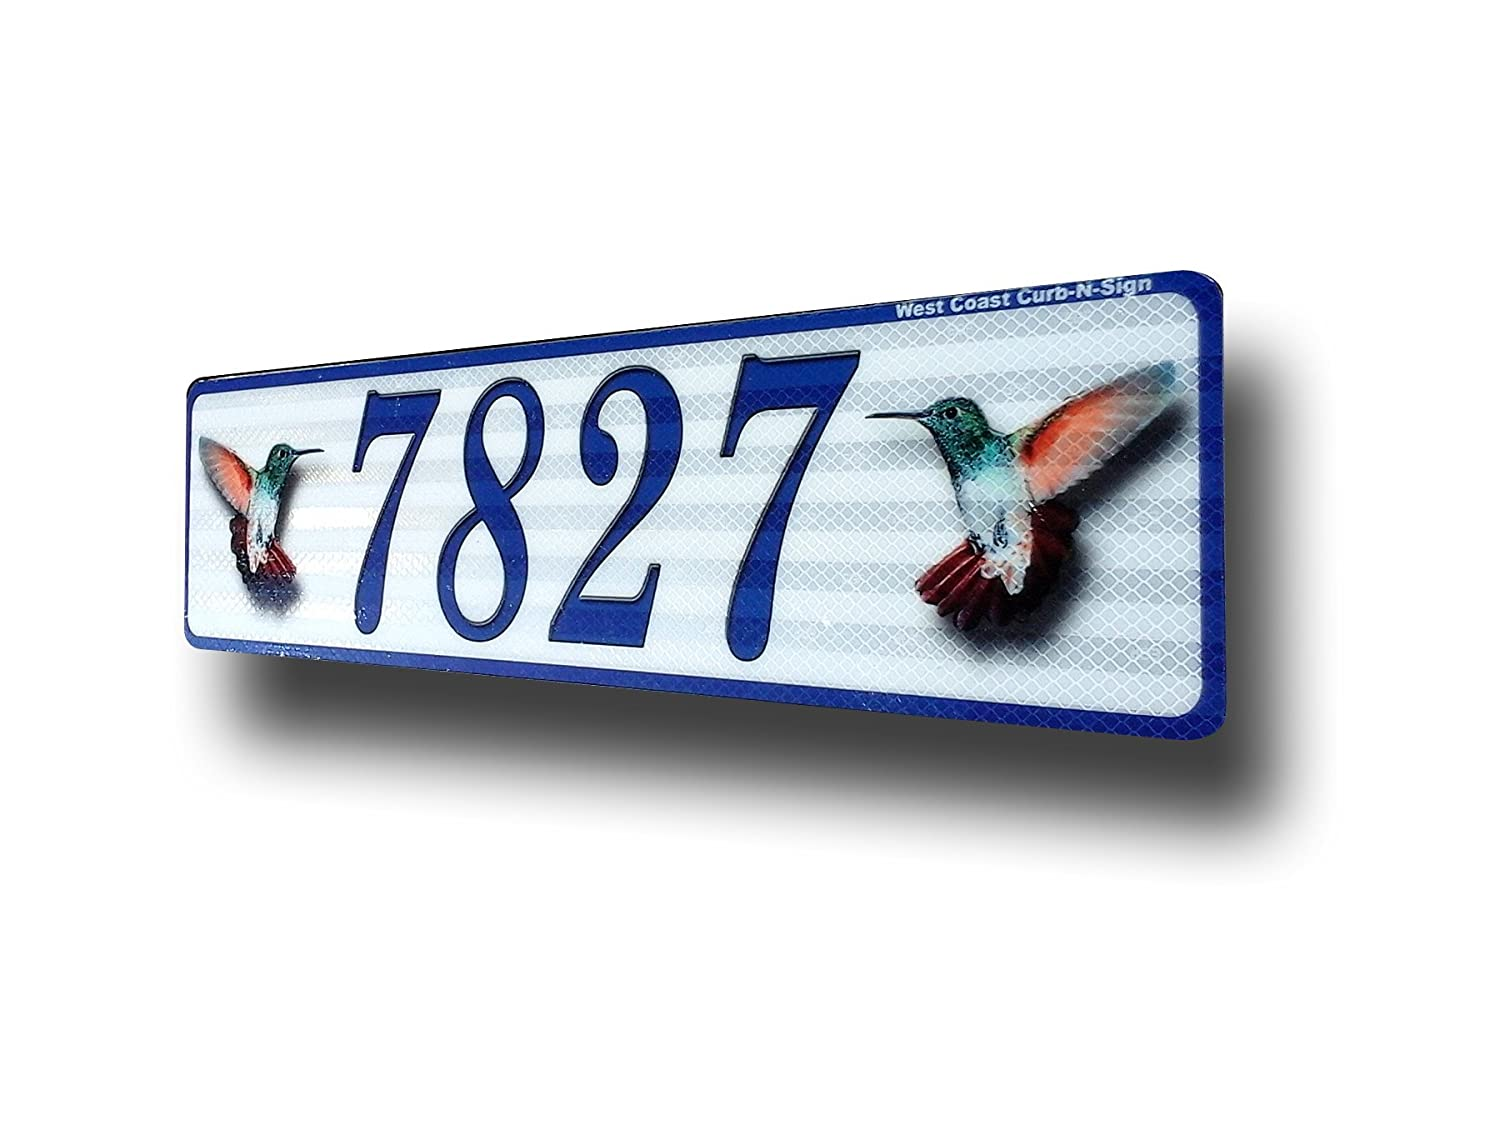 Hummingbird, Curb, Mailbox, House Address Plaque, Reflective West Coast Curb-N-Sign